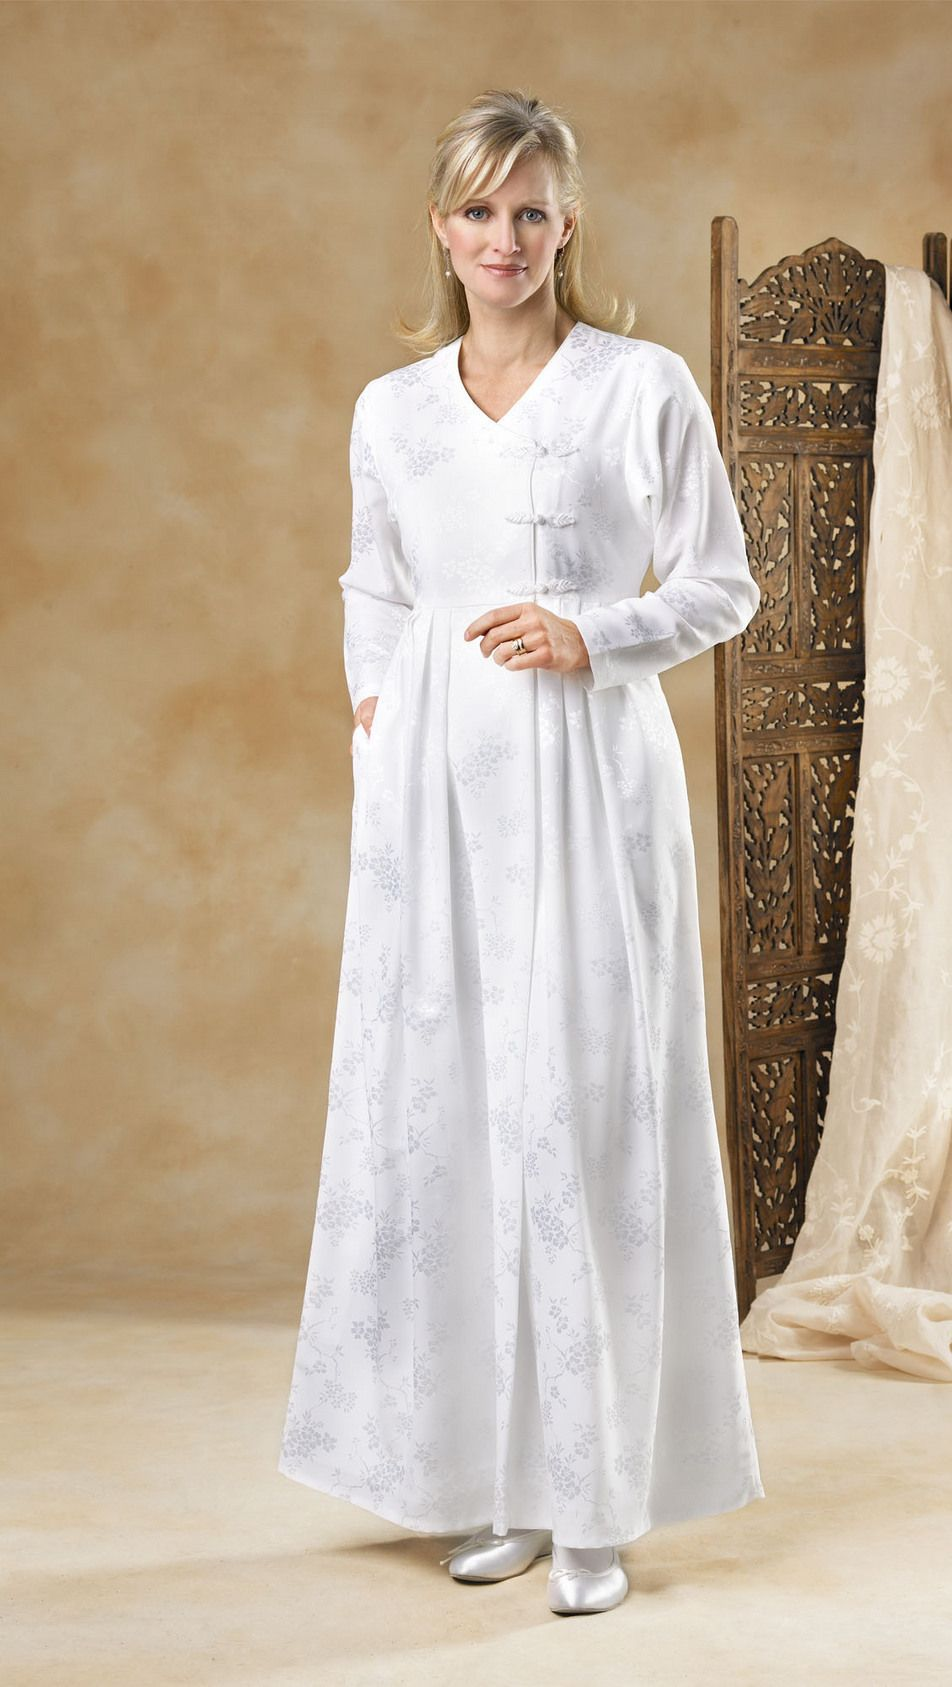 Minuet white dress 98 lds temple dresses pinterest for Mormon temple wedding dresses